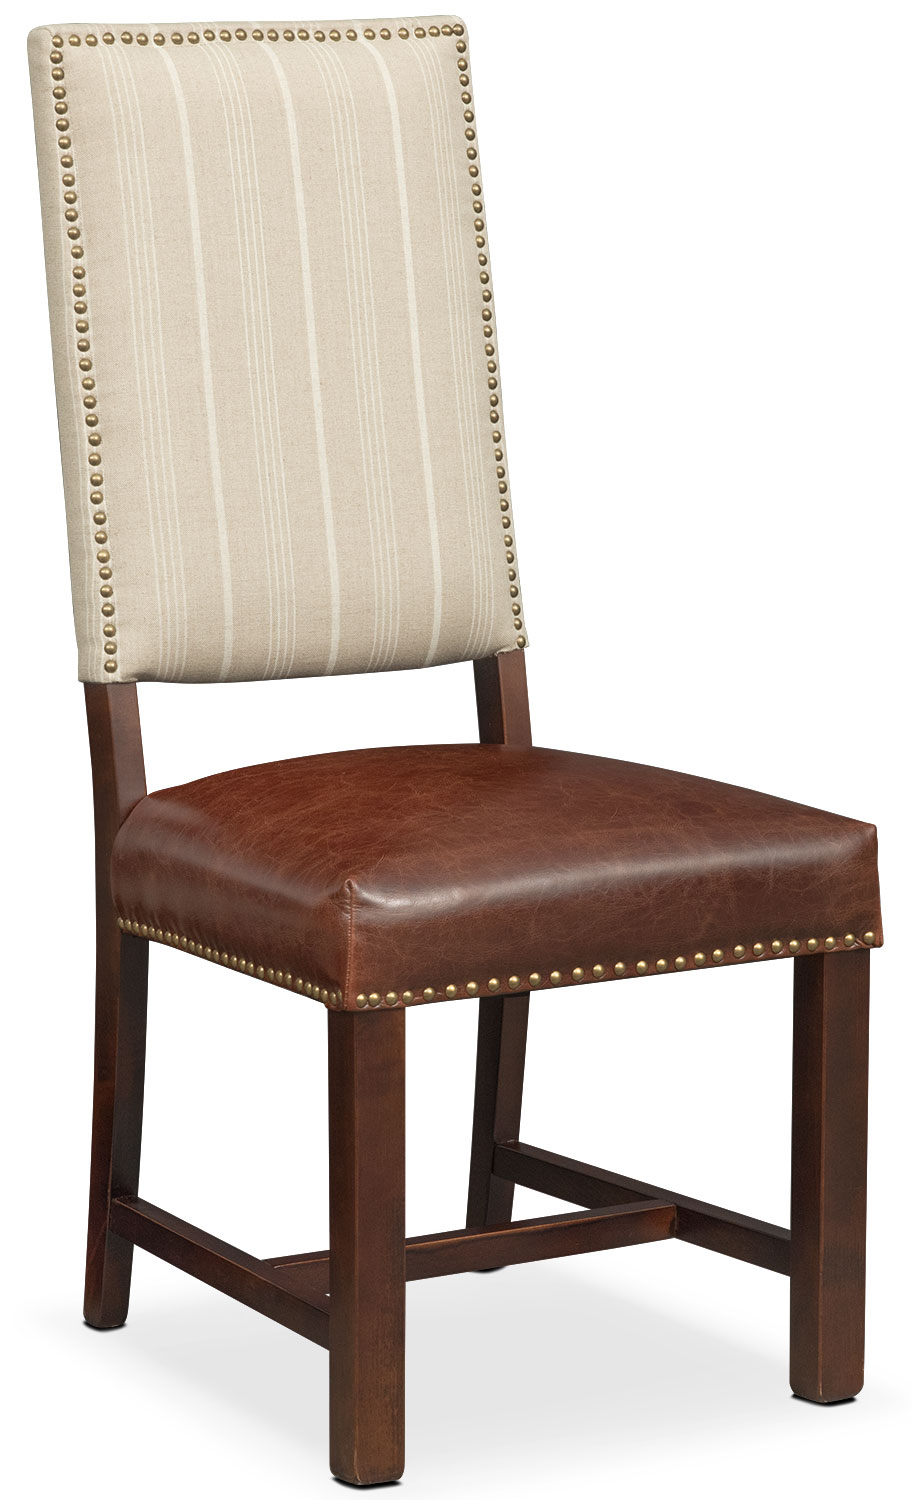 Tannery Side Chair - Brown